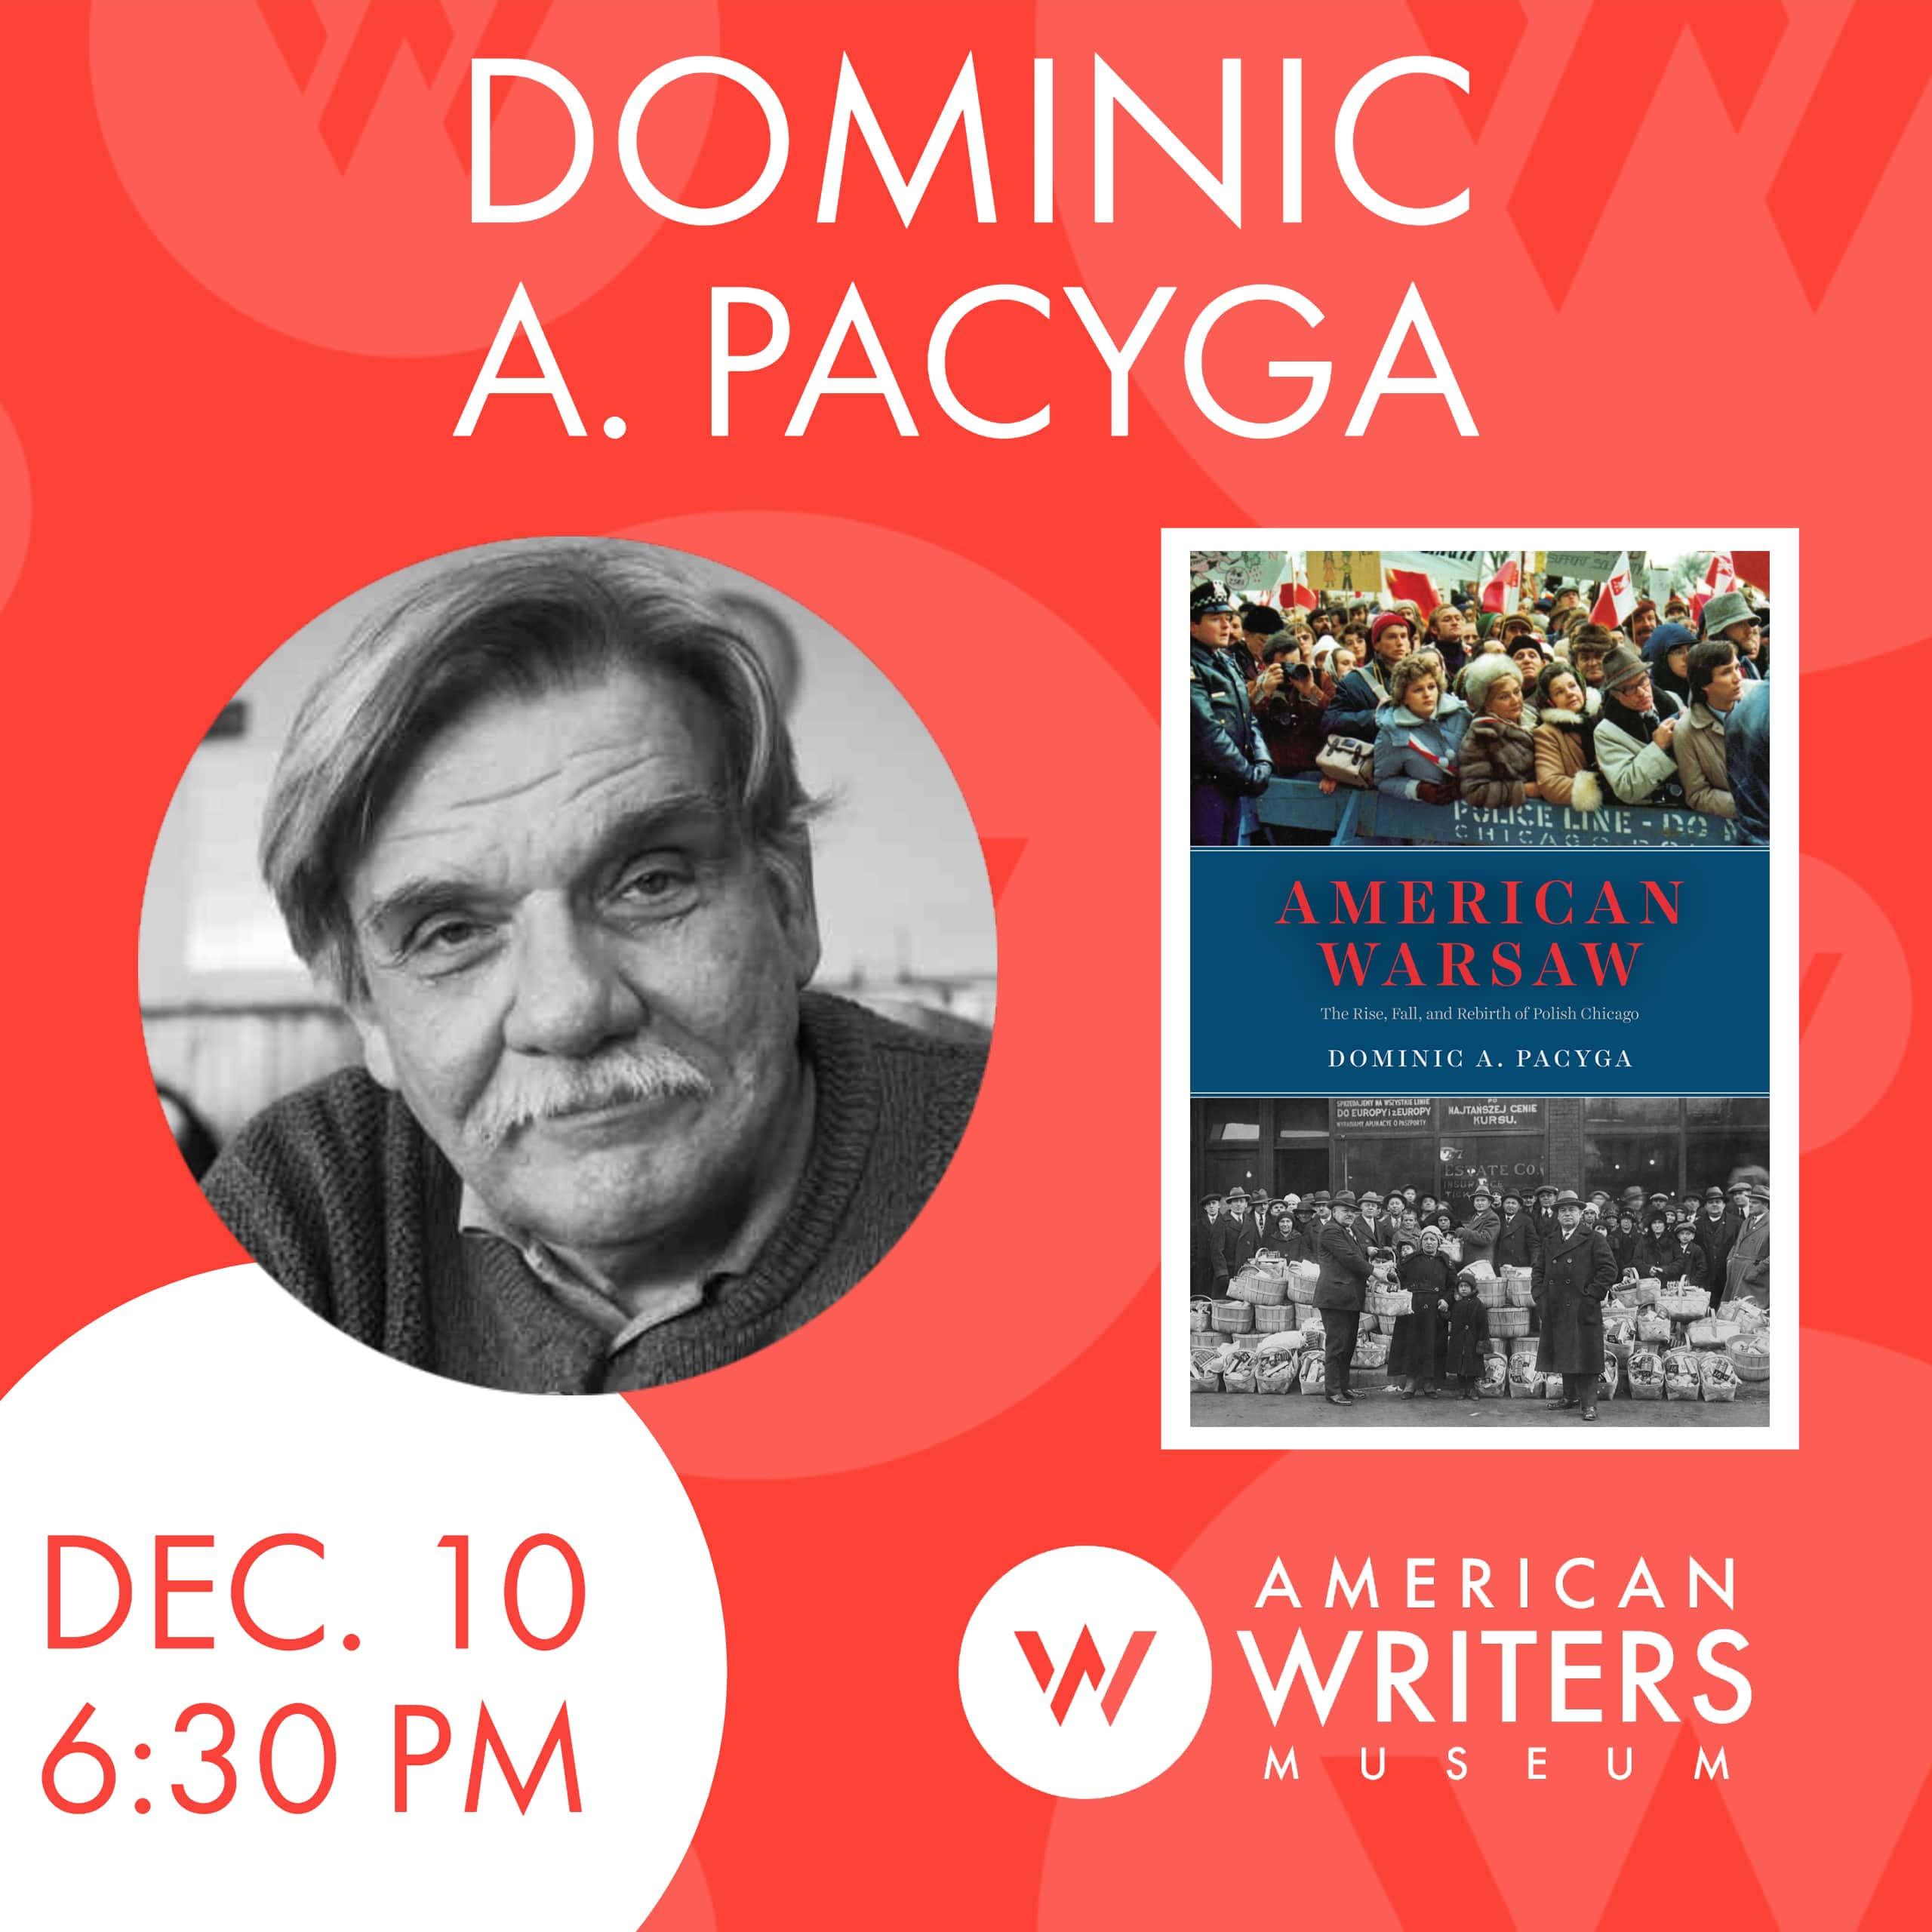 Dominic A. Pacyga presents his new book American Warsaw at the American Writers Museum in Chicago on December 10 at 6:30 pm as part of the programming for special exhibit My America: Immigrant and Refugee Writers Today.